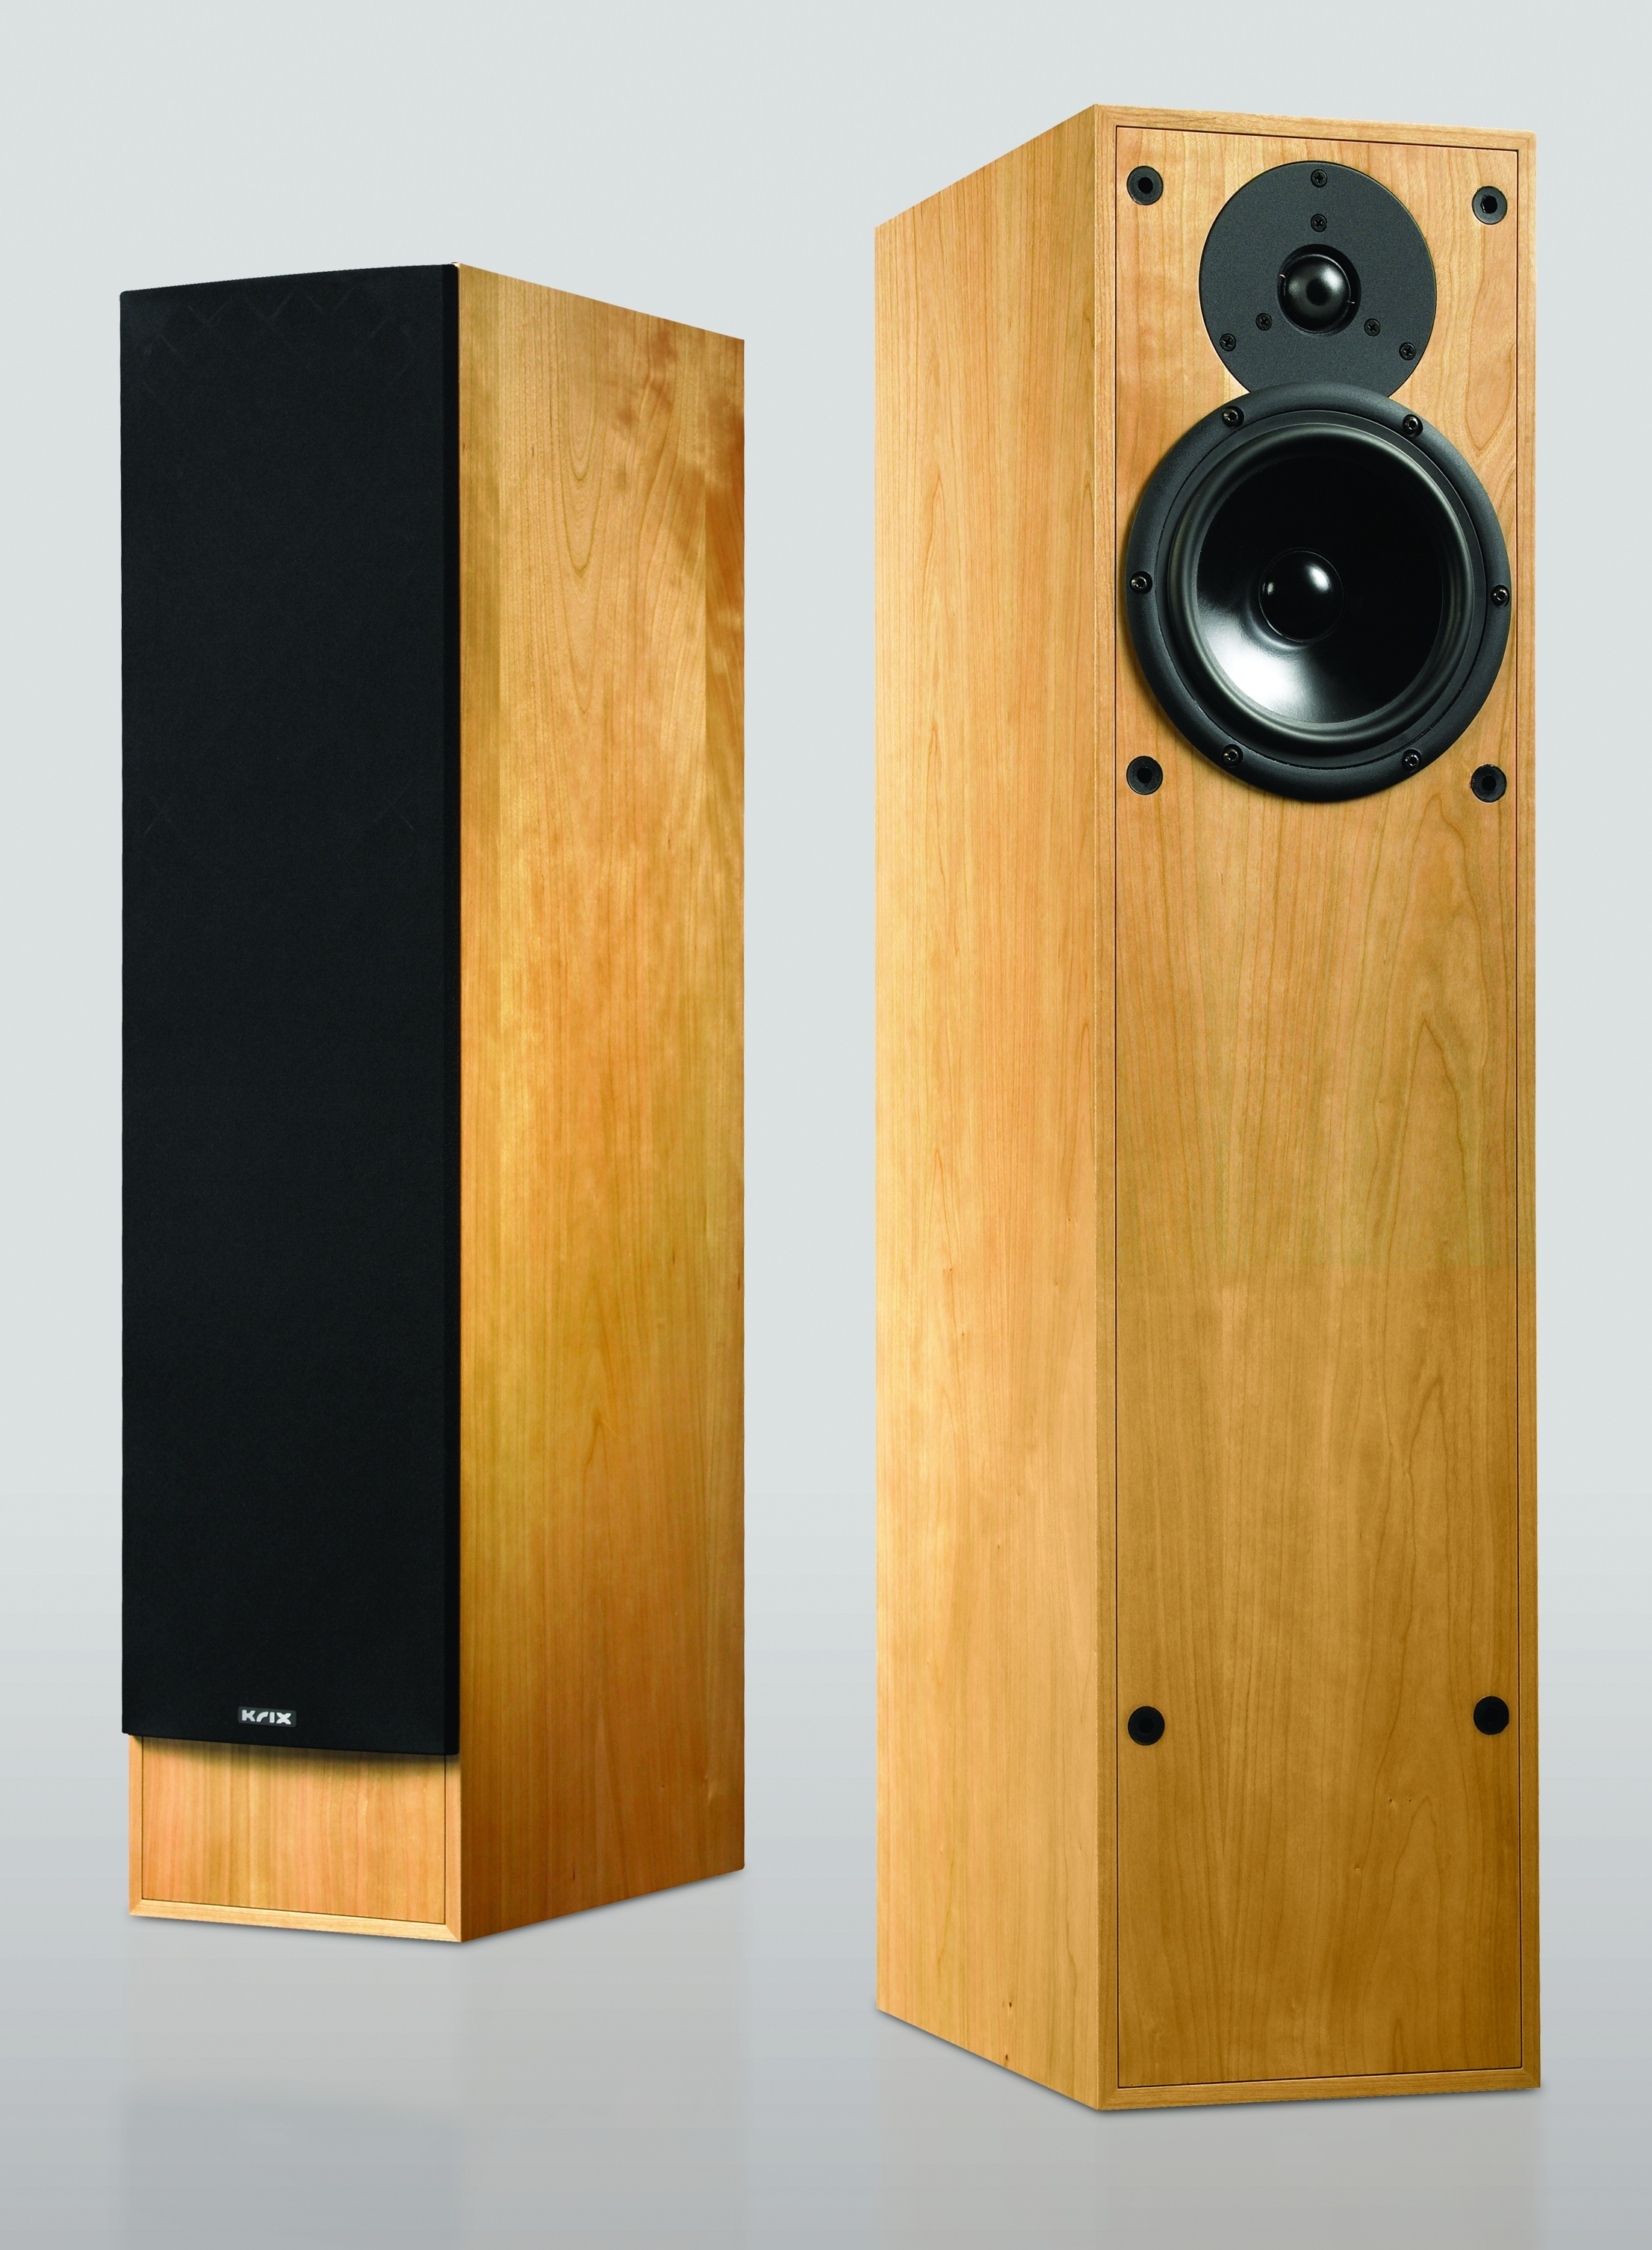 Krix Apex floor standing speaker for home theatre or stereo